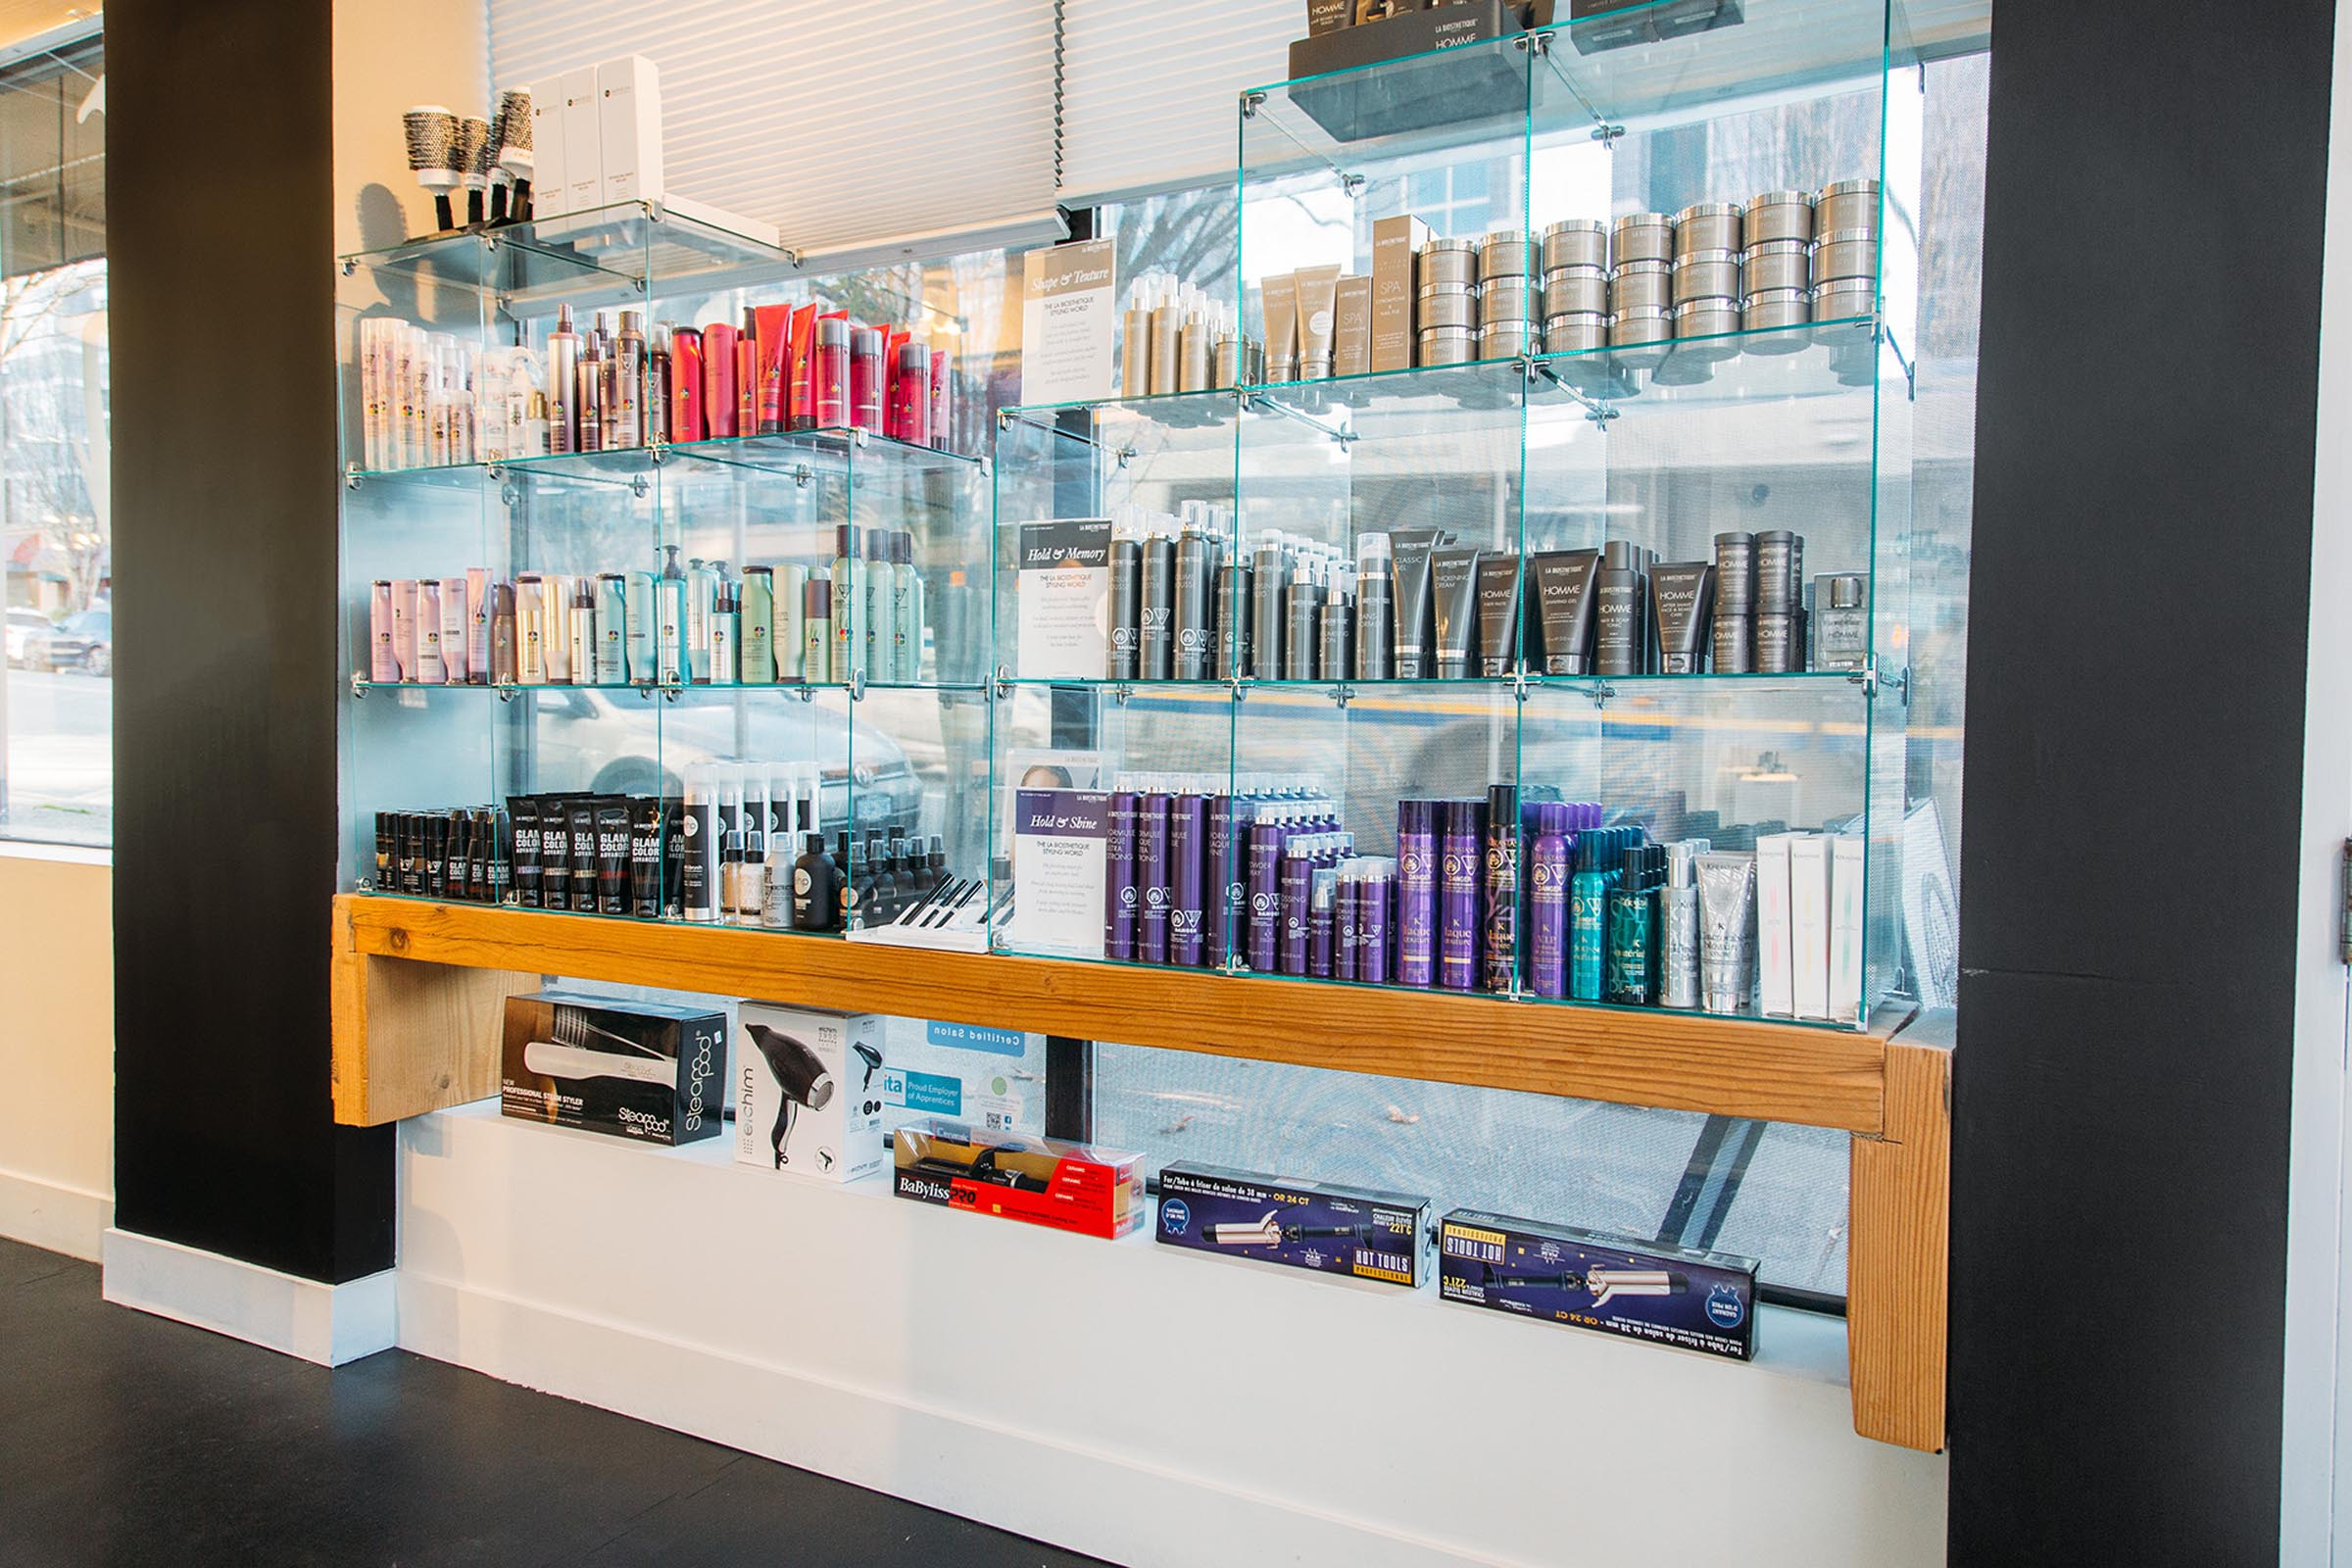 Hype Hair Studio Products and Brands